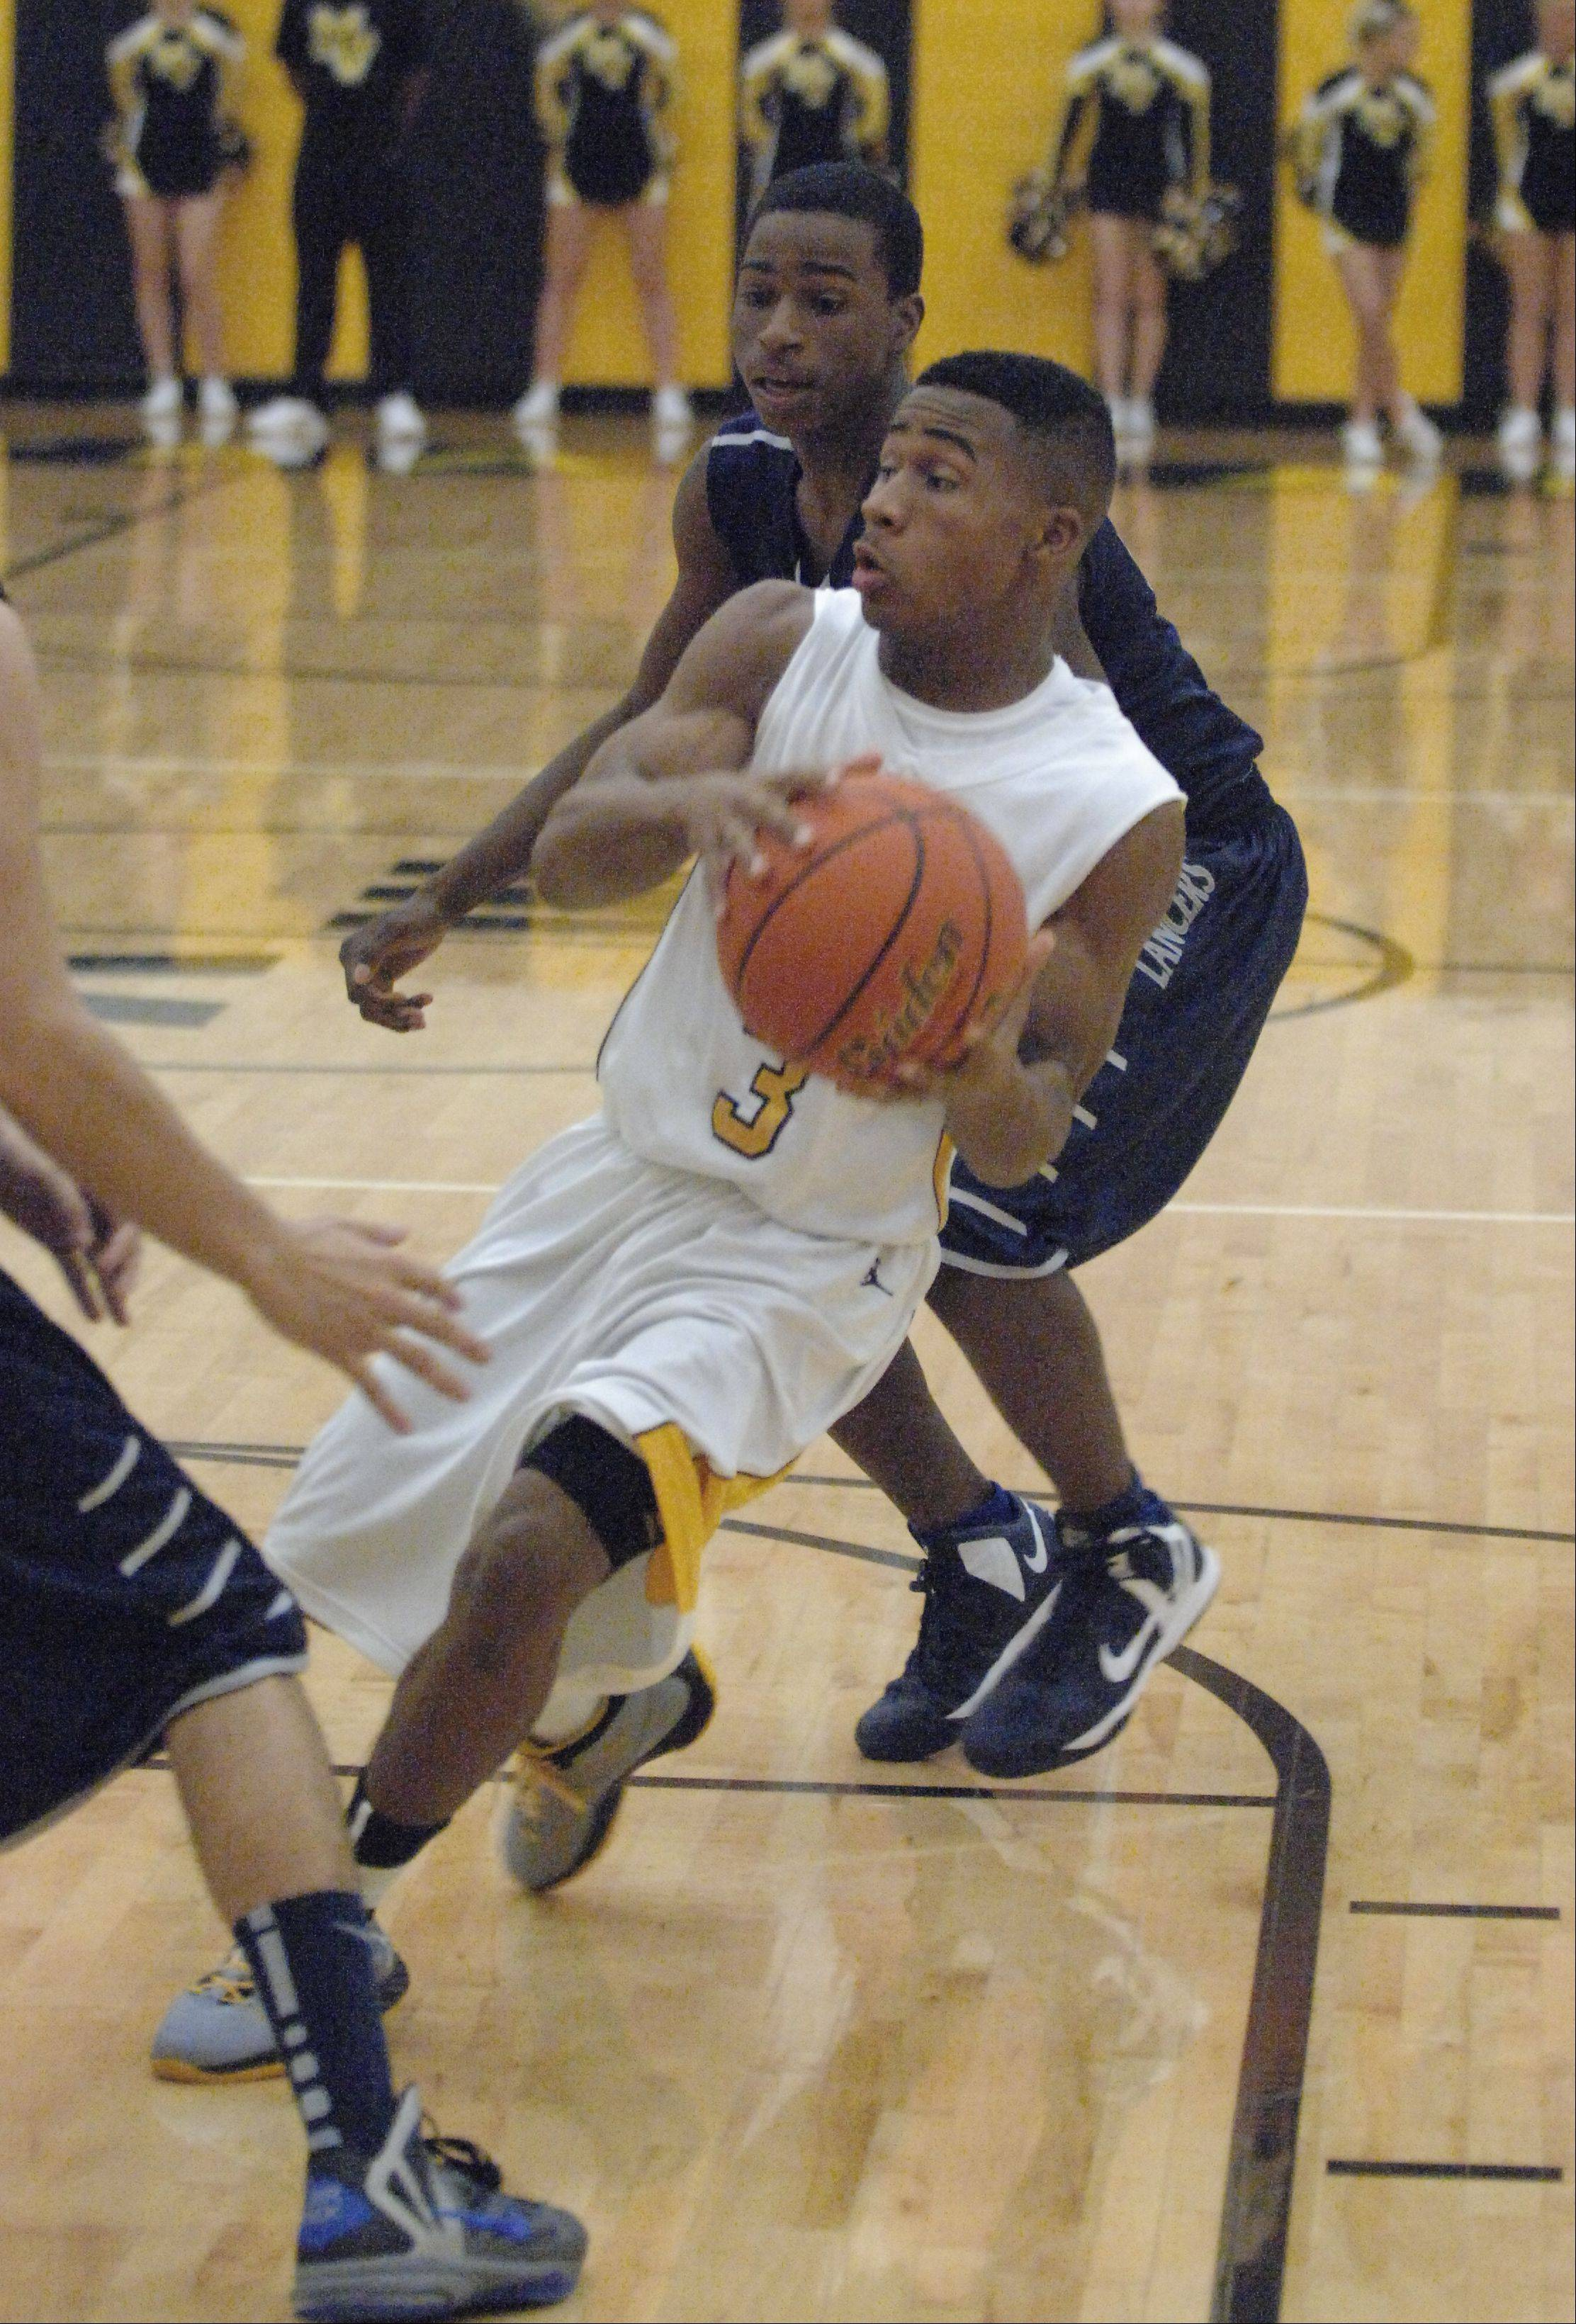 Metea Valley High School hosted Lake Park High School Friday night for boys basketball.